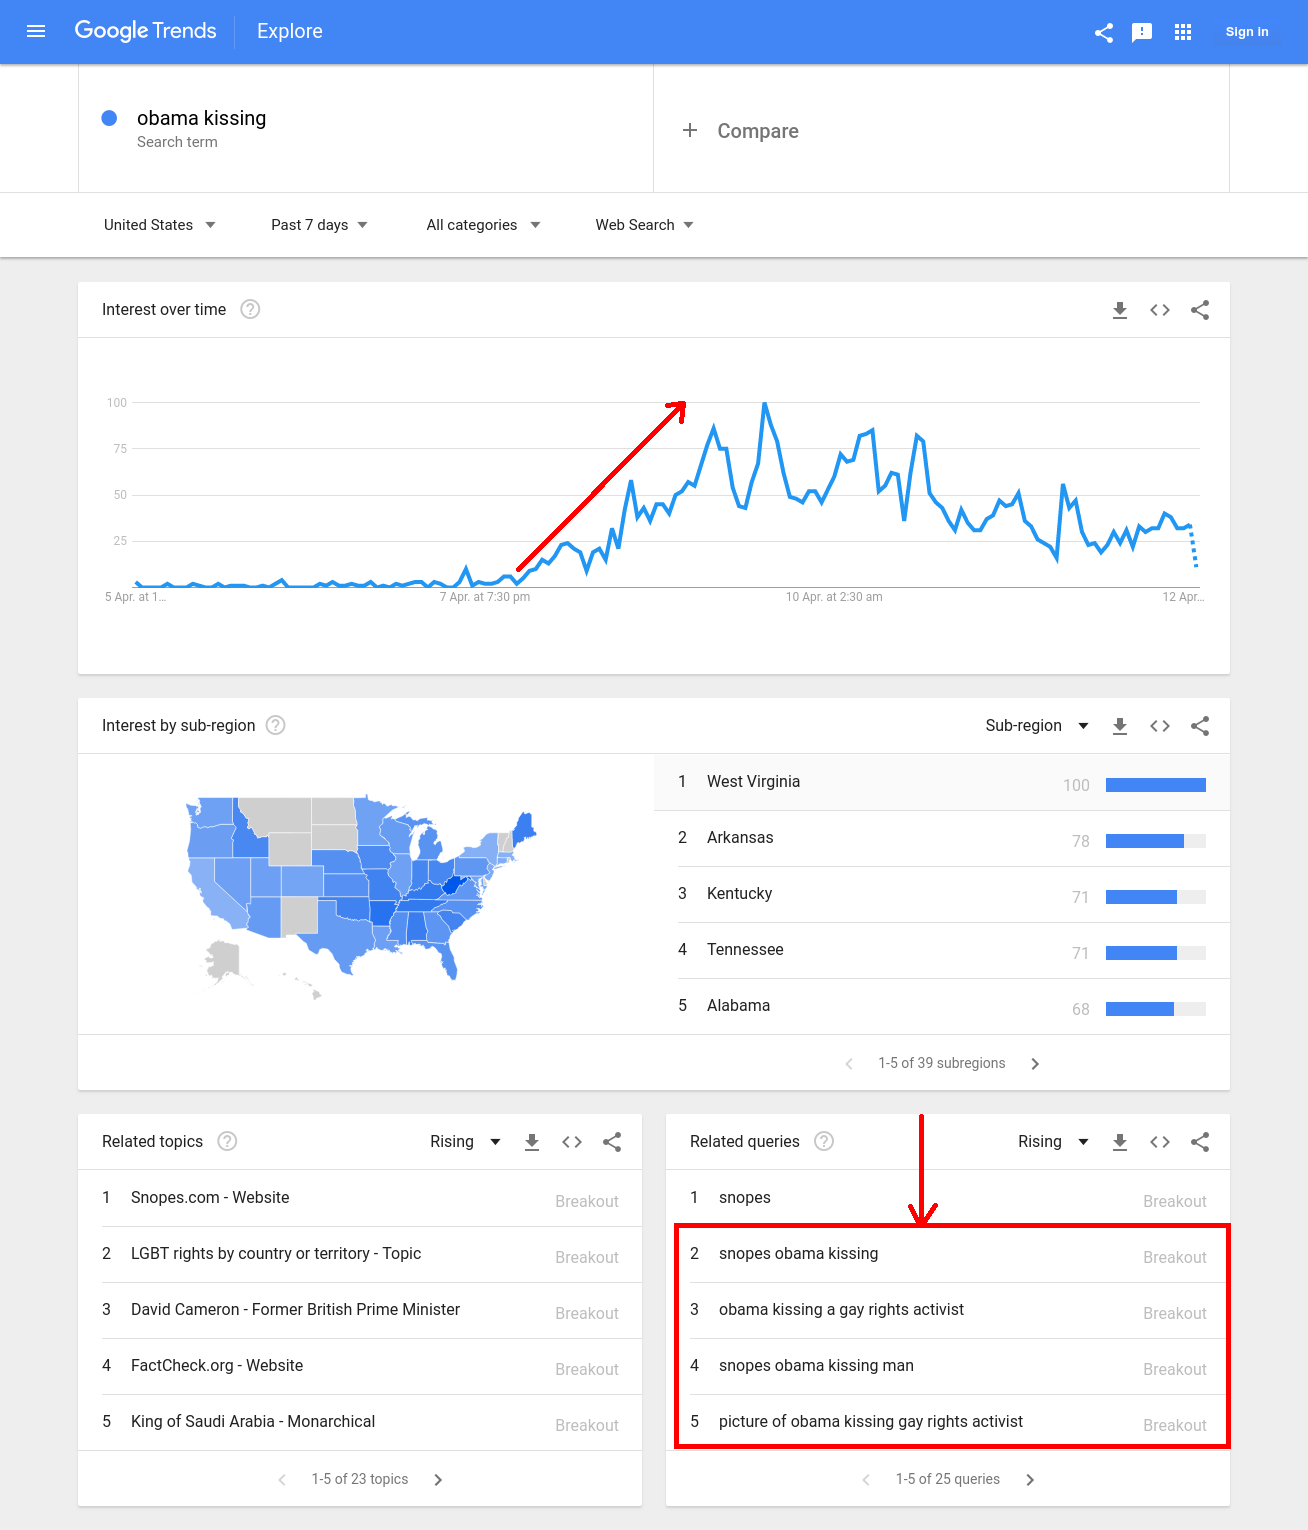 obama kissing search trend rise